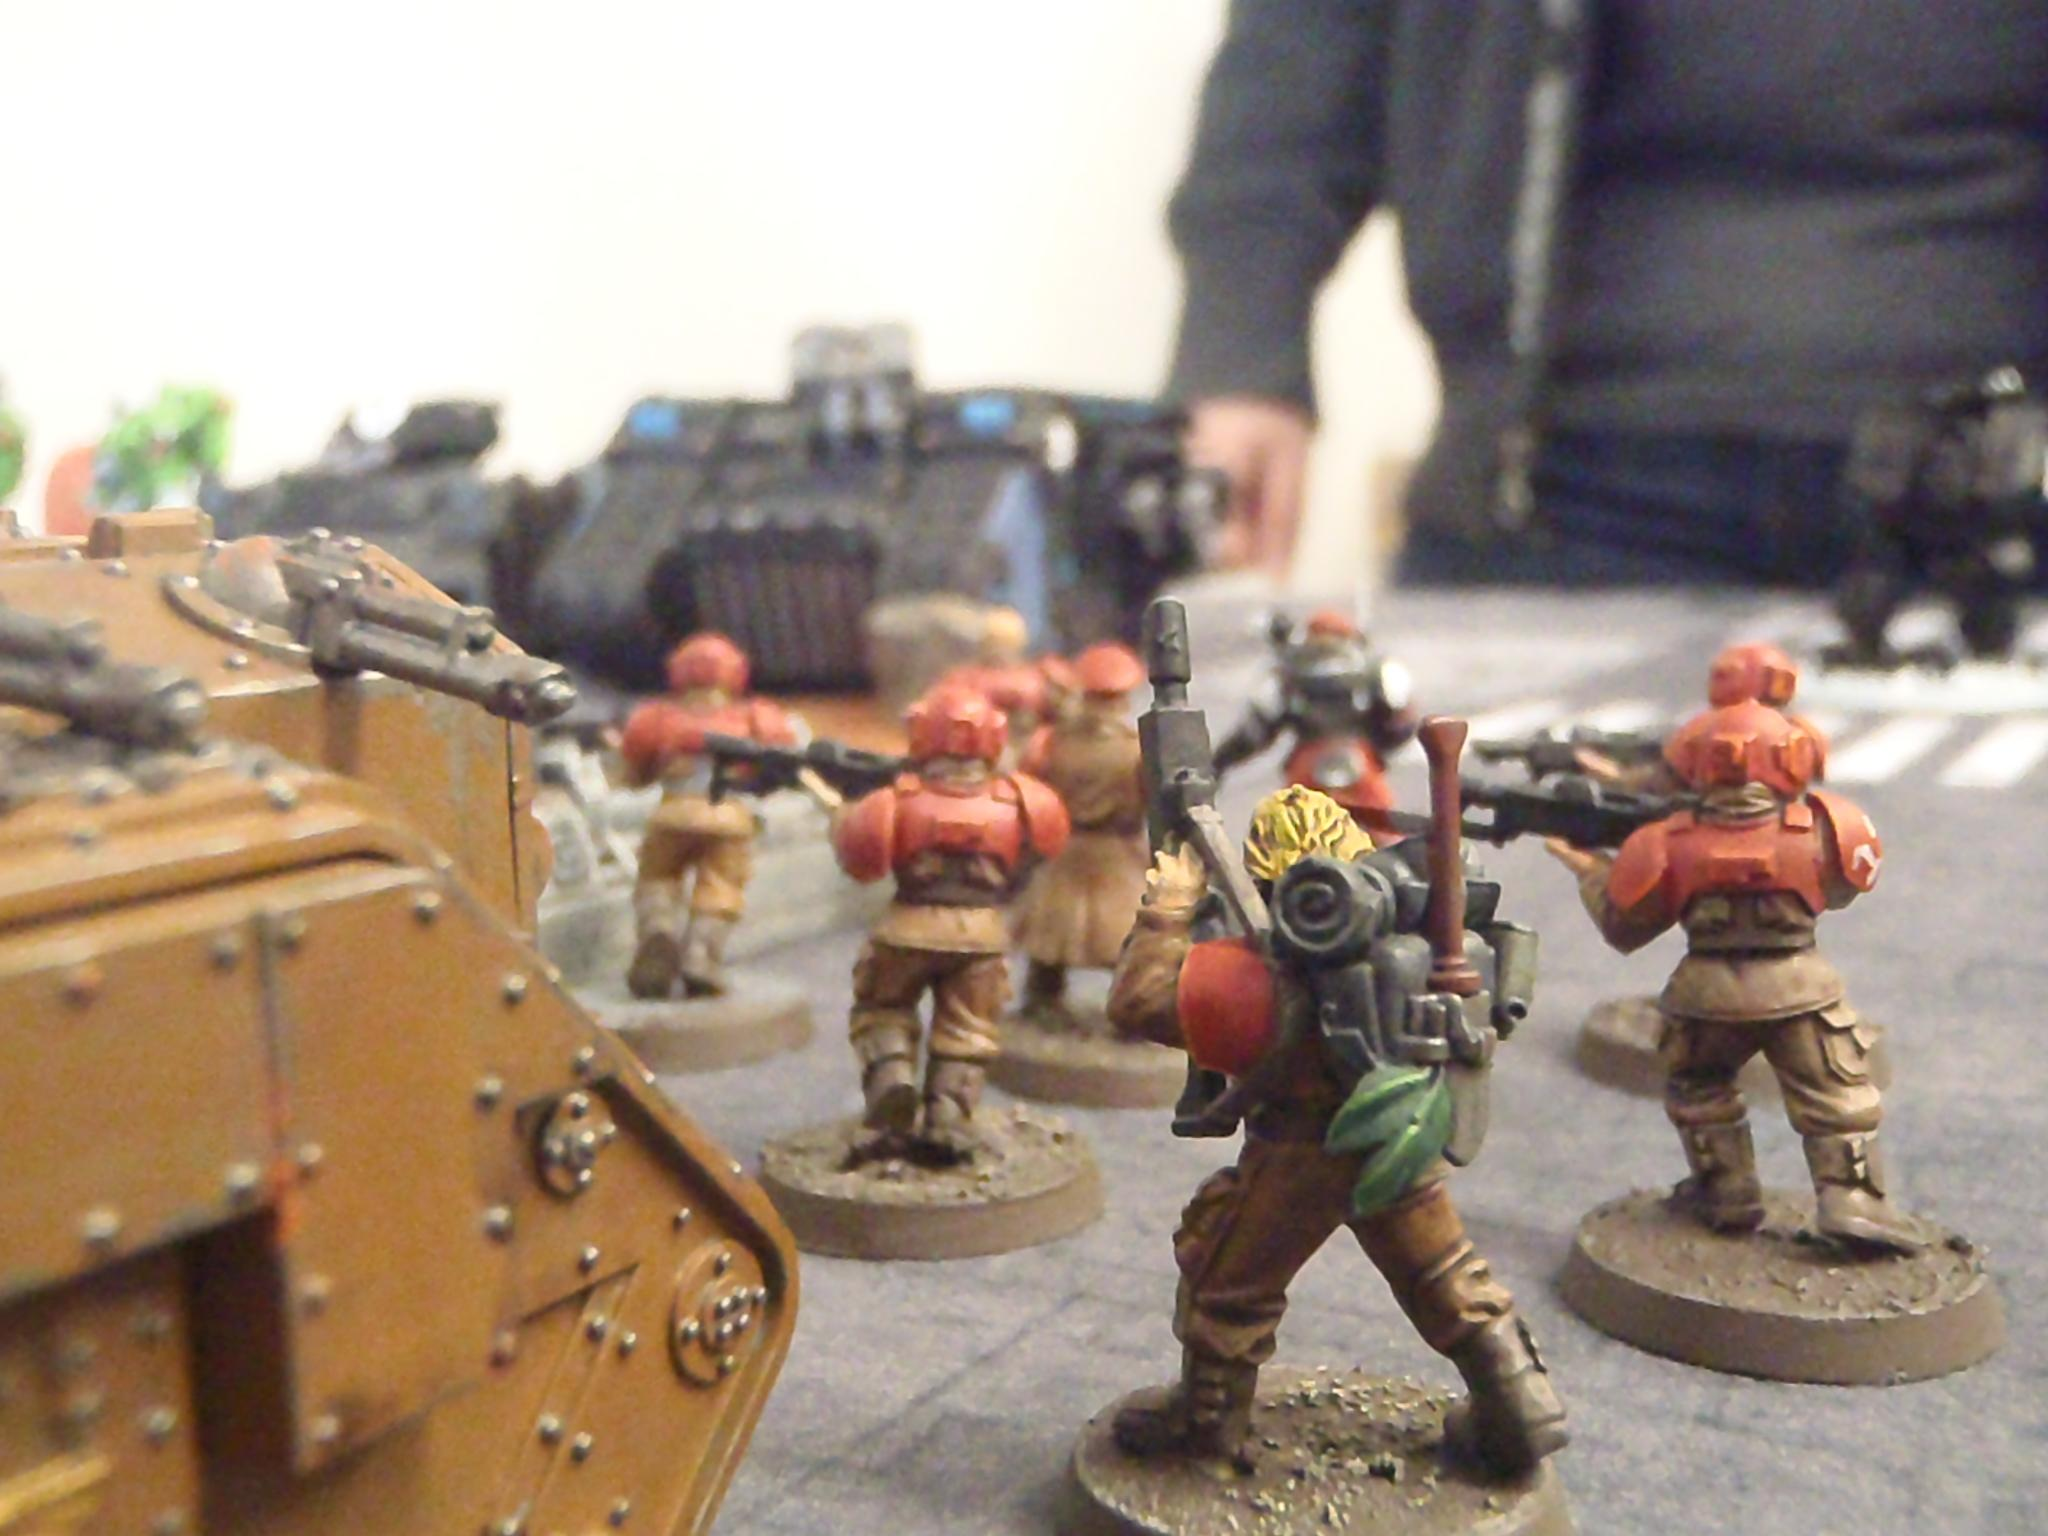 Battle Report, Imperial Guard